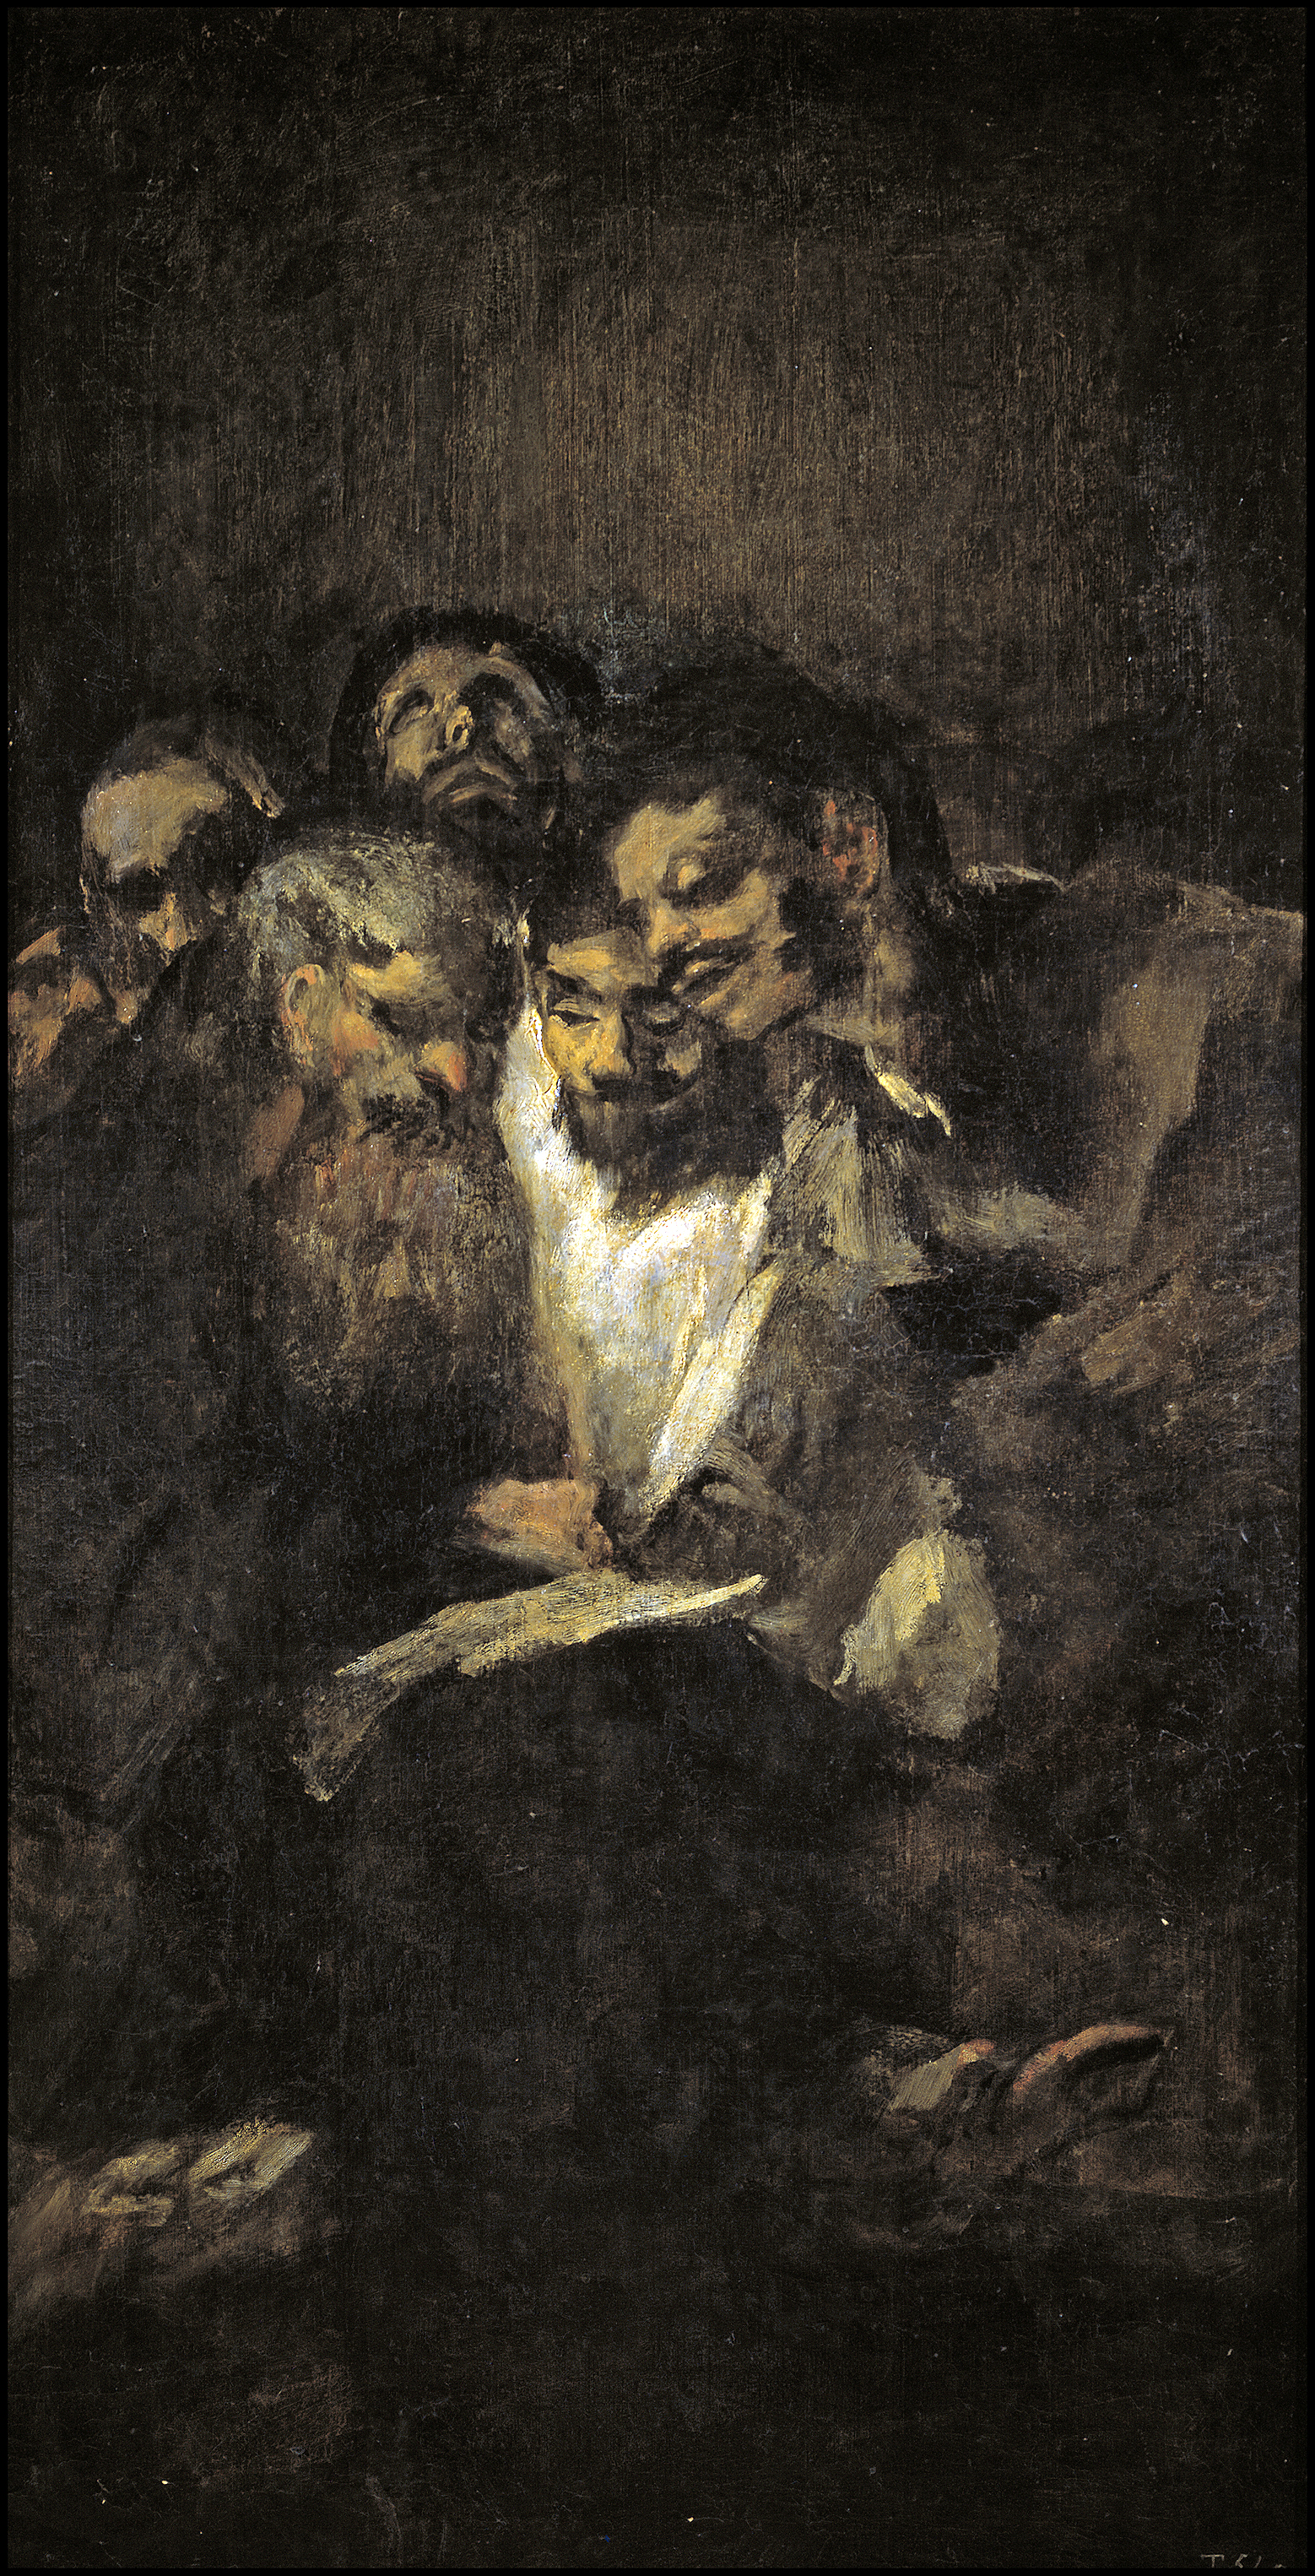 https://i2.wp.com/upload.wikimedia.org/wikipedia/commons/3/34/Hombres_leyendo.jpg